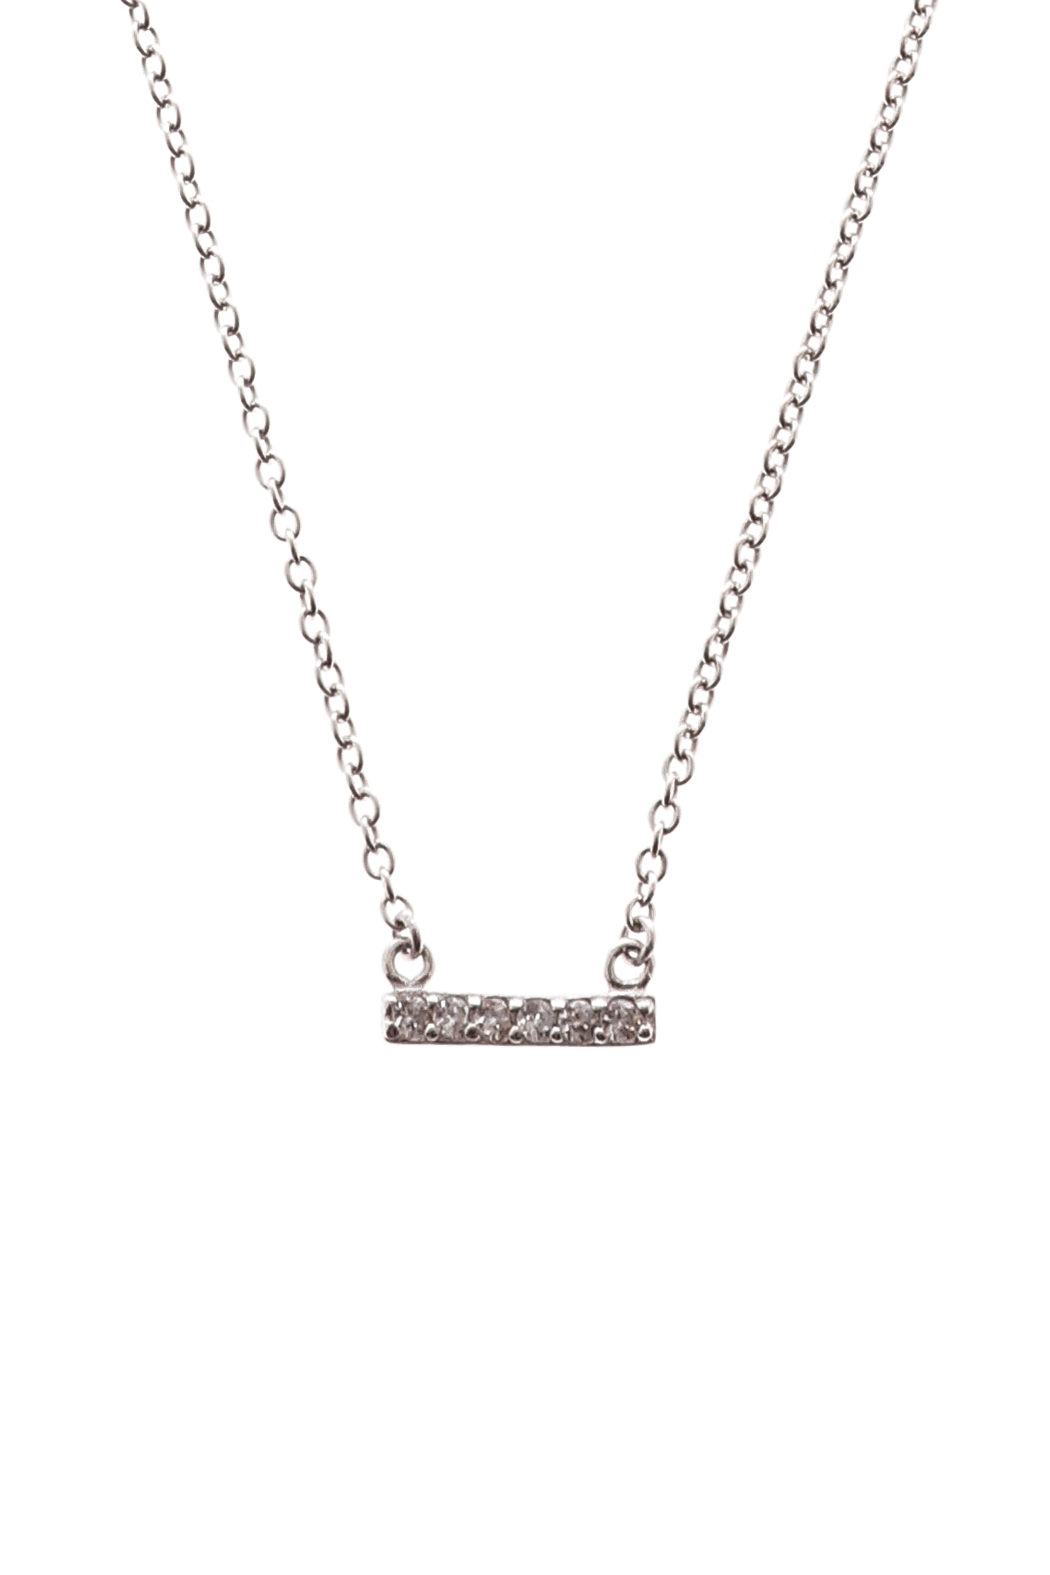 Sapphire Sky private label Silver Chain & Pave Bar Necklace - Main Image